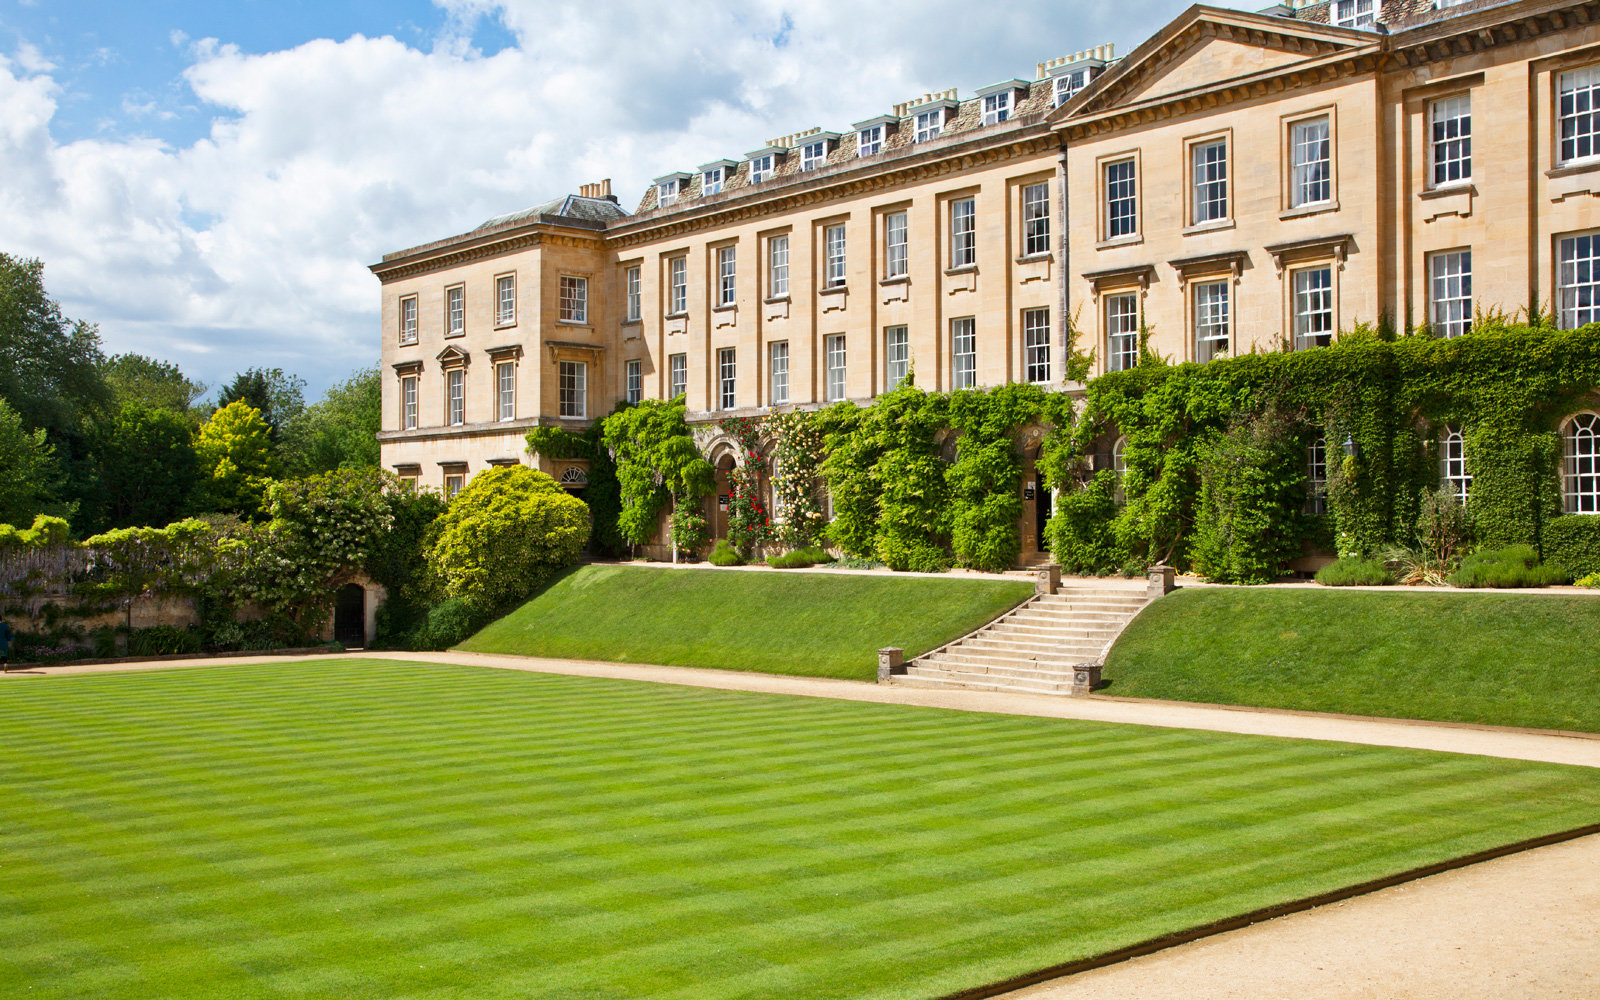 The main quad of Worcester College at Oxford University.